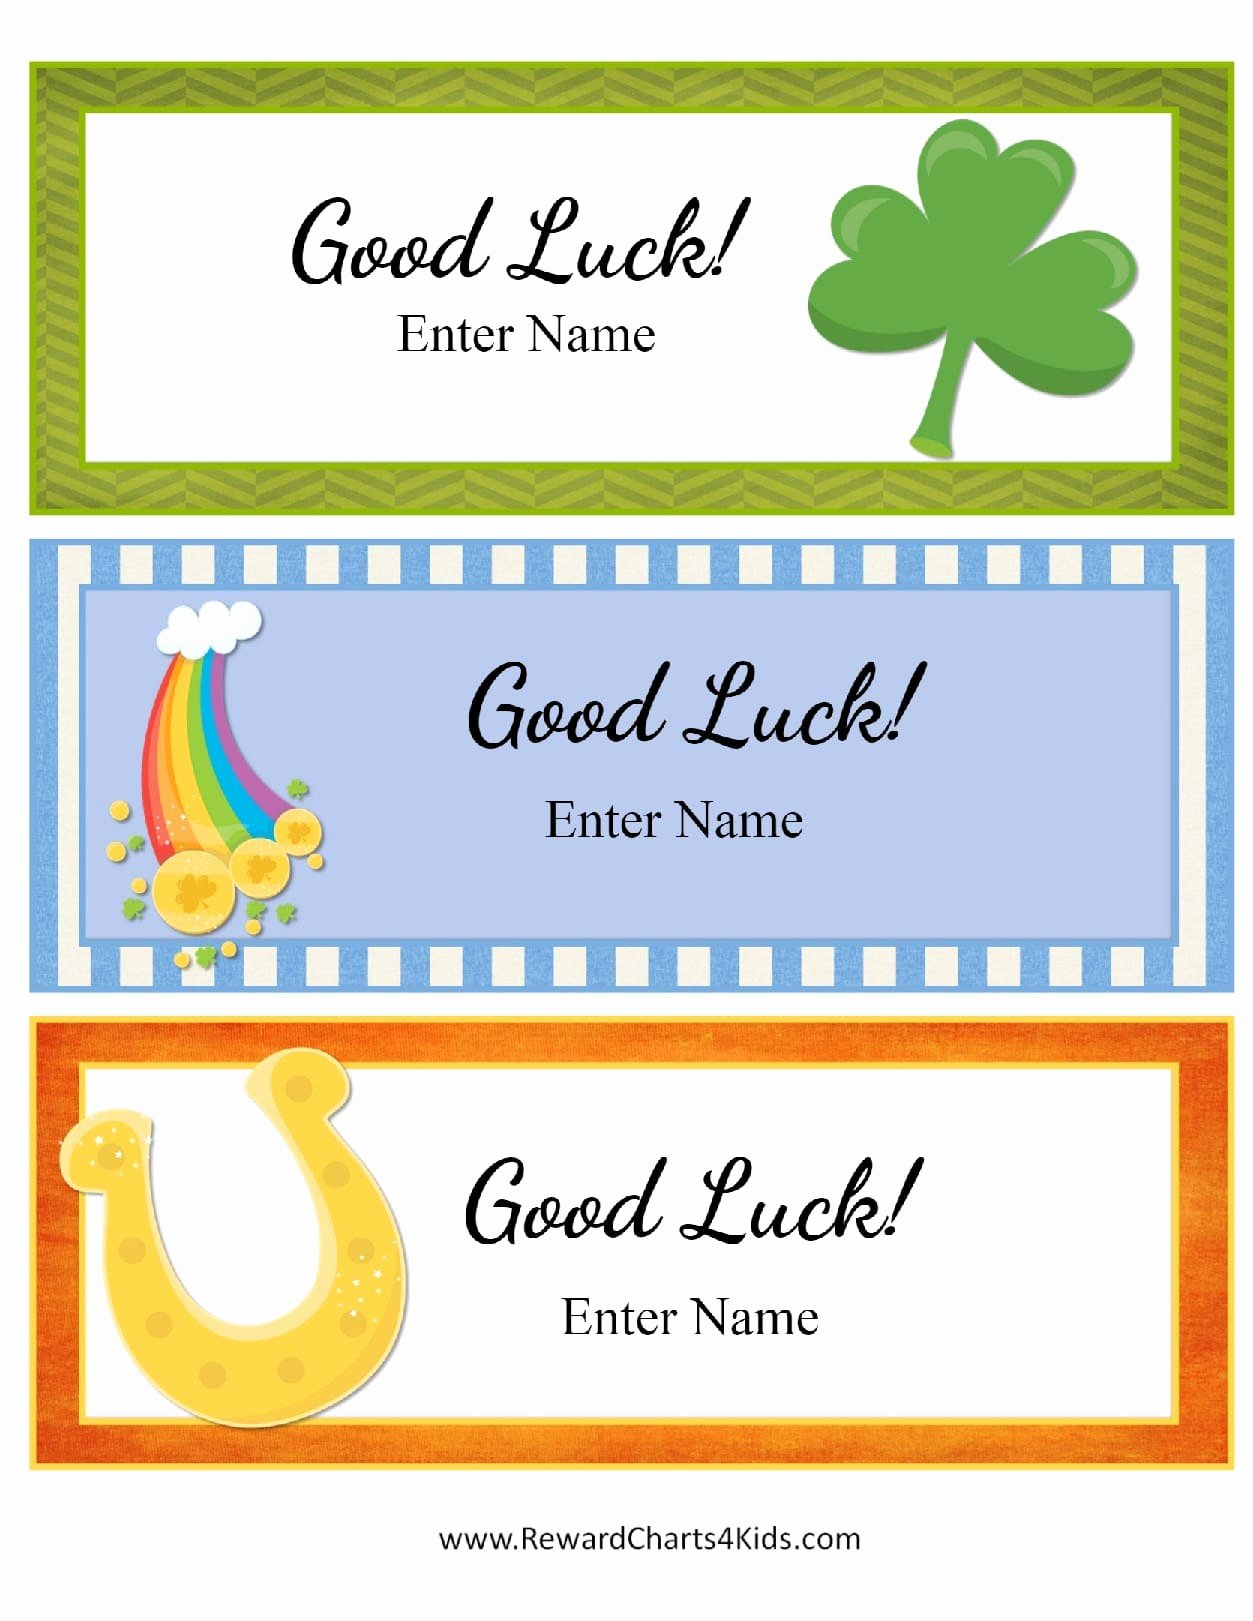 Good Luck Card Template Portablegasgrillweber